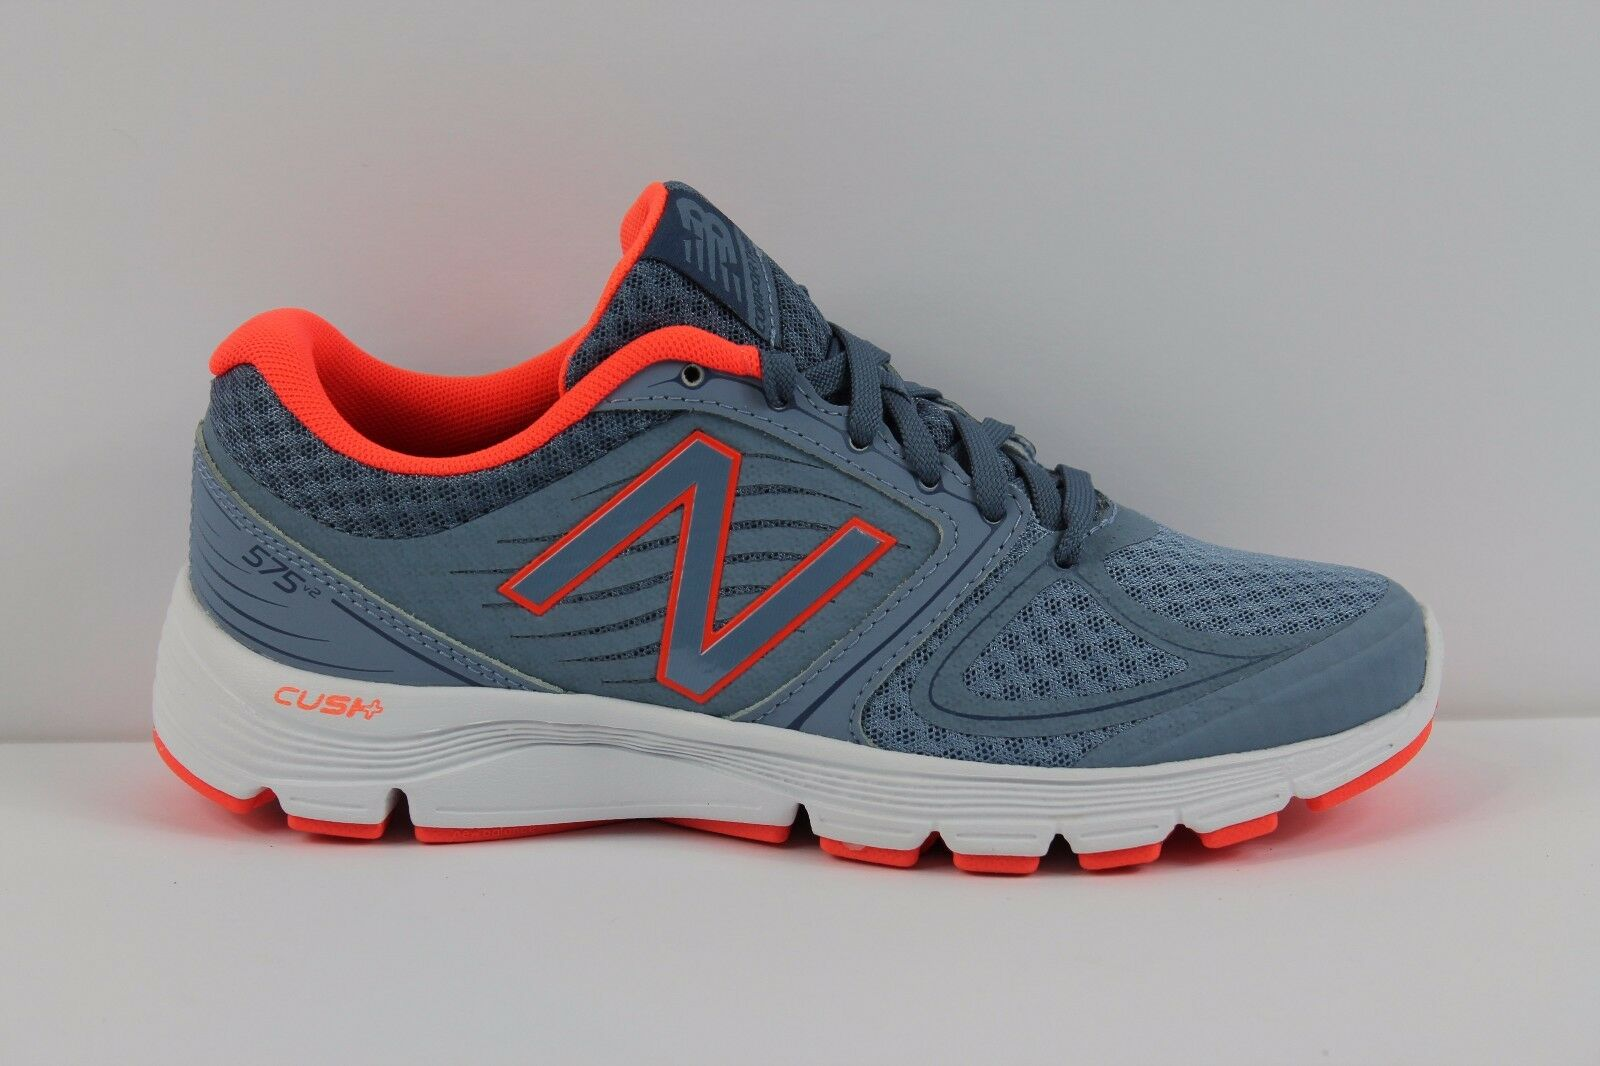 Damenschuhe Cushion New Balance W575LI2 Neutral Cushion Damenschuhe Running Schuhes Grau Coral Orange Weiß b592c0